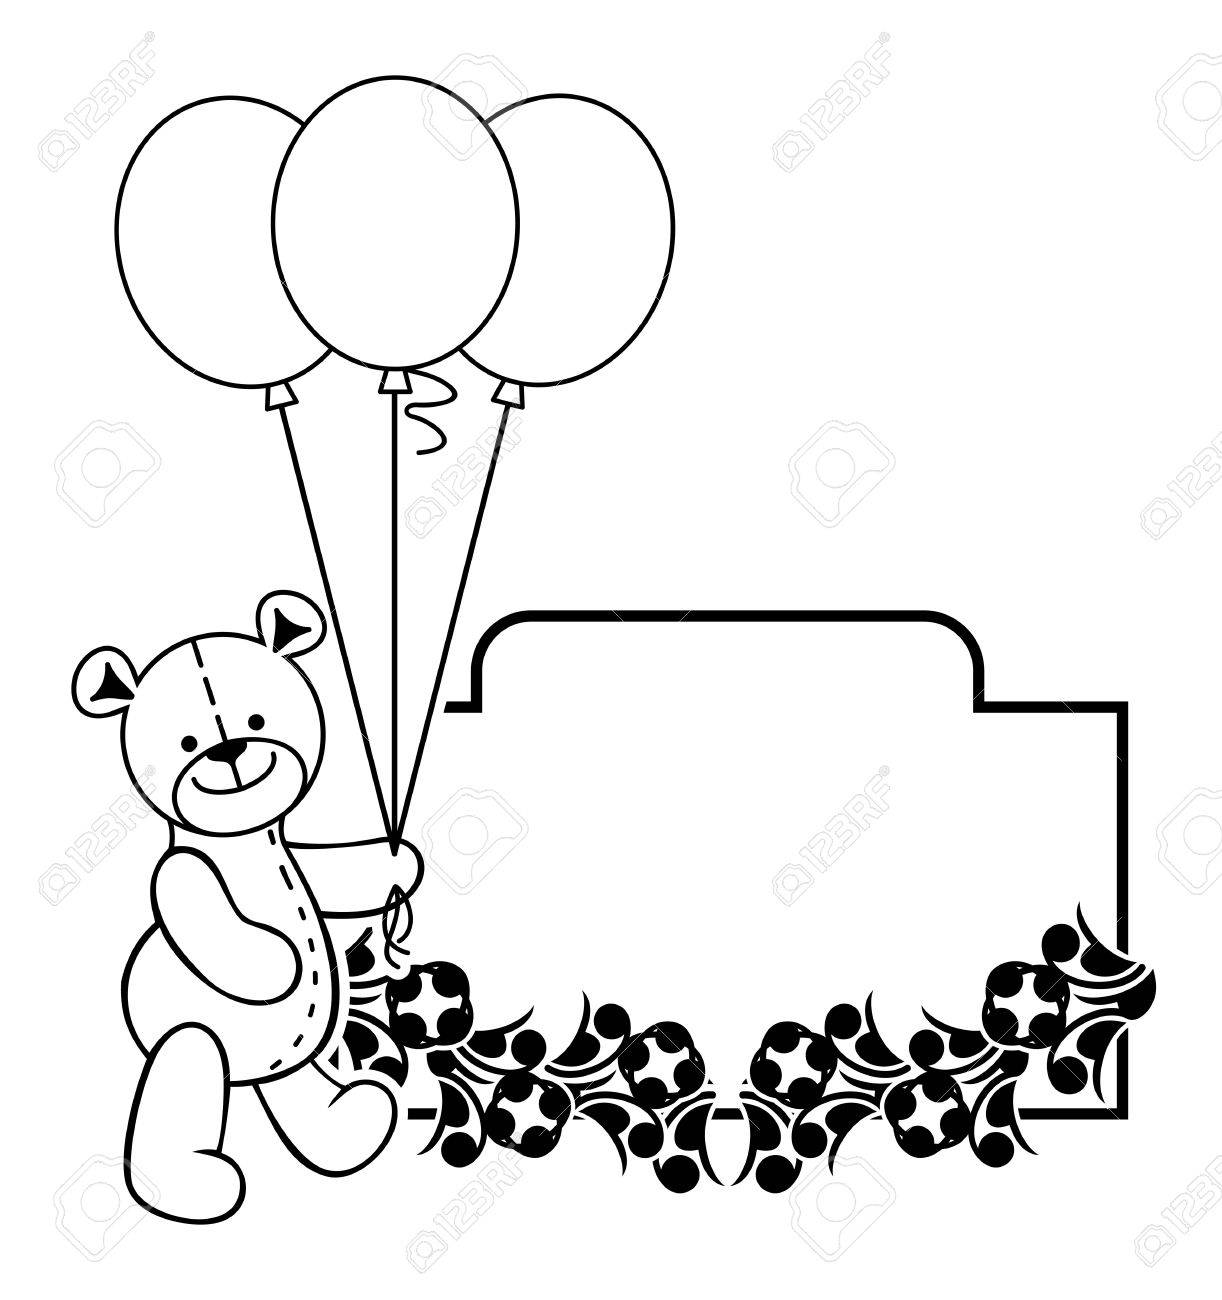 black and white frame with teddy bear plush toy vector clip rh 123rf com Girl Clip Art Black and White cute teddy bear clipart black and white